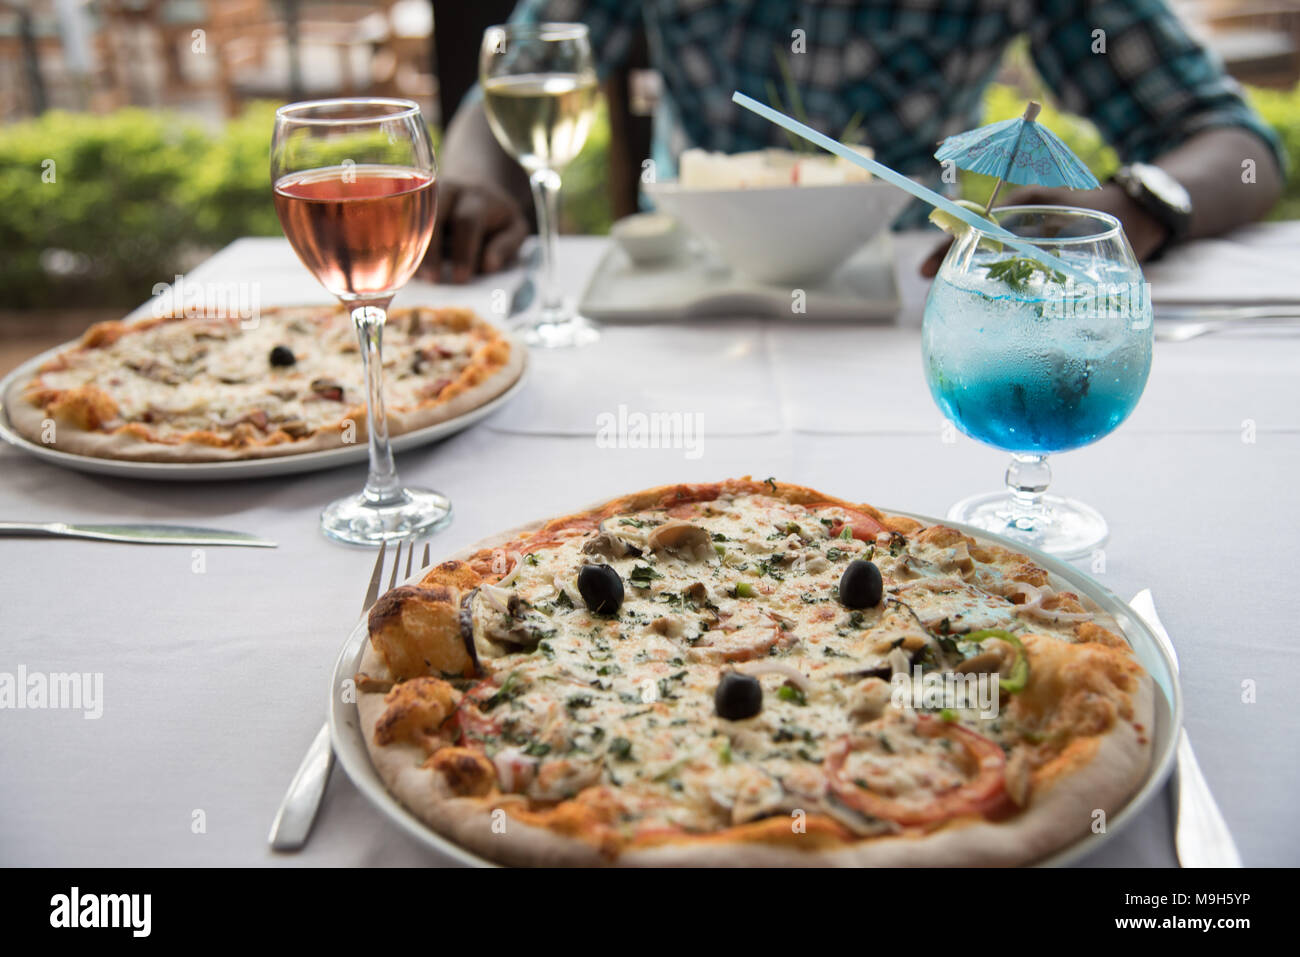 Photo Of Restaurant Table With Two Pizzas And A Salad Also Has Bright Blue Cocktail And Glass Of Pink Wine A Dark Skinned Man Sits In The Background Stock Photo Alamy